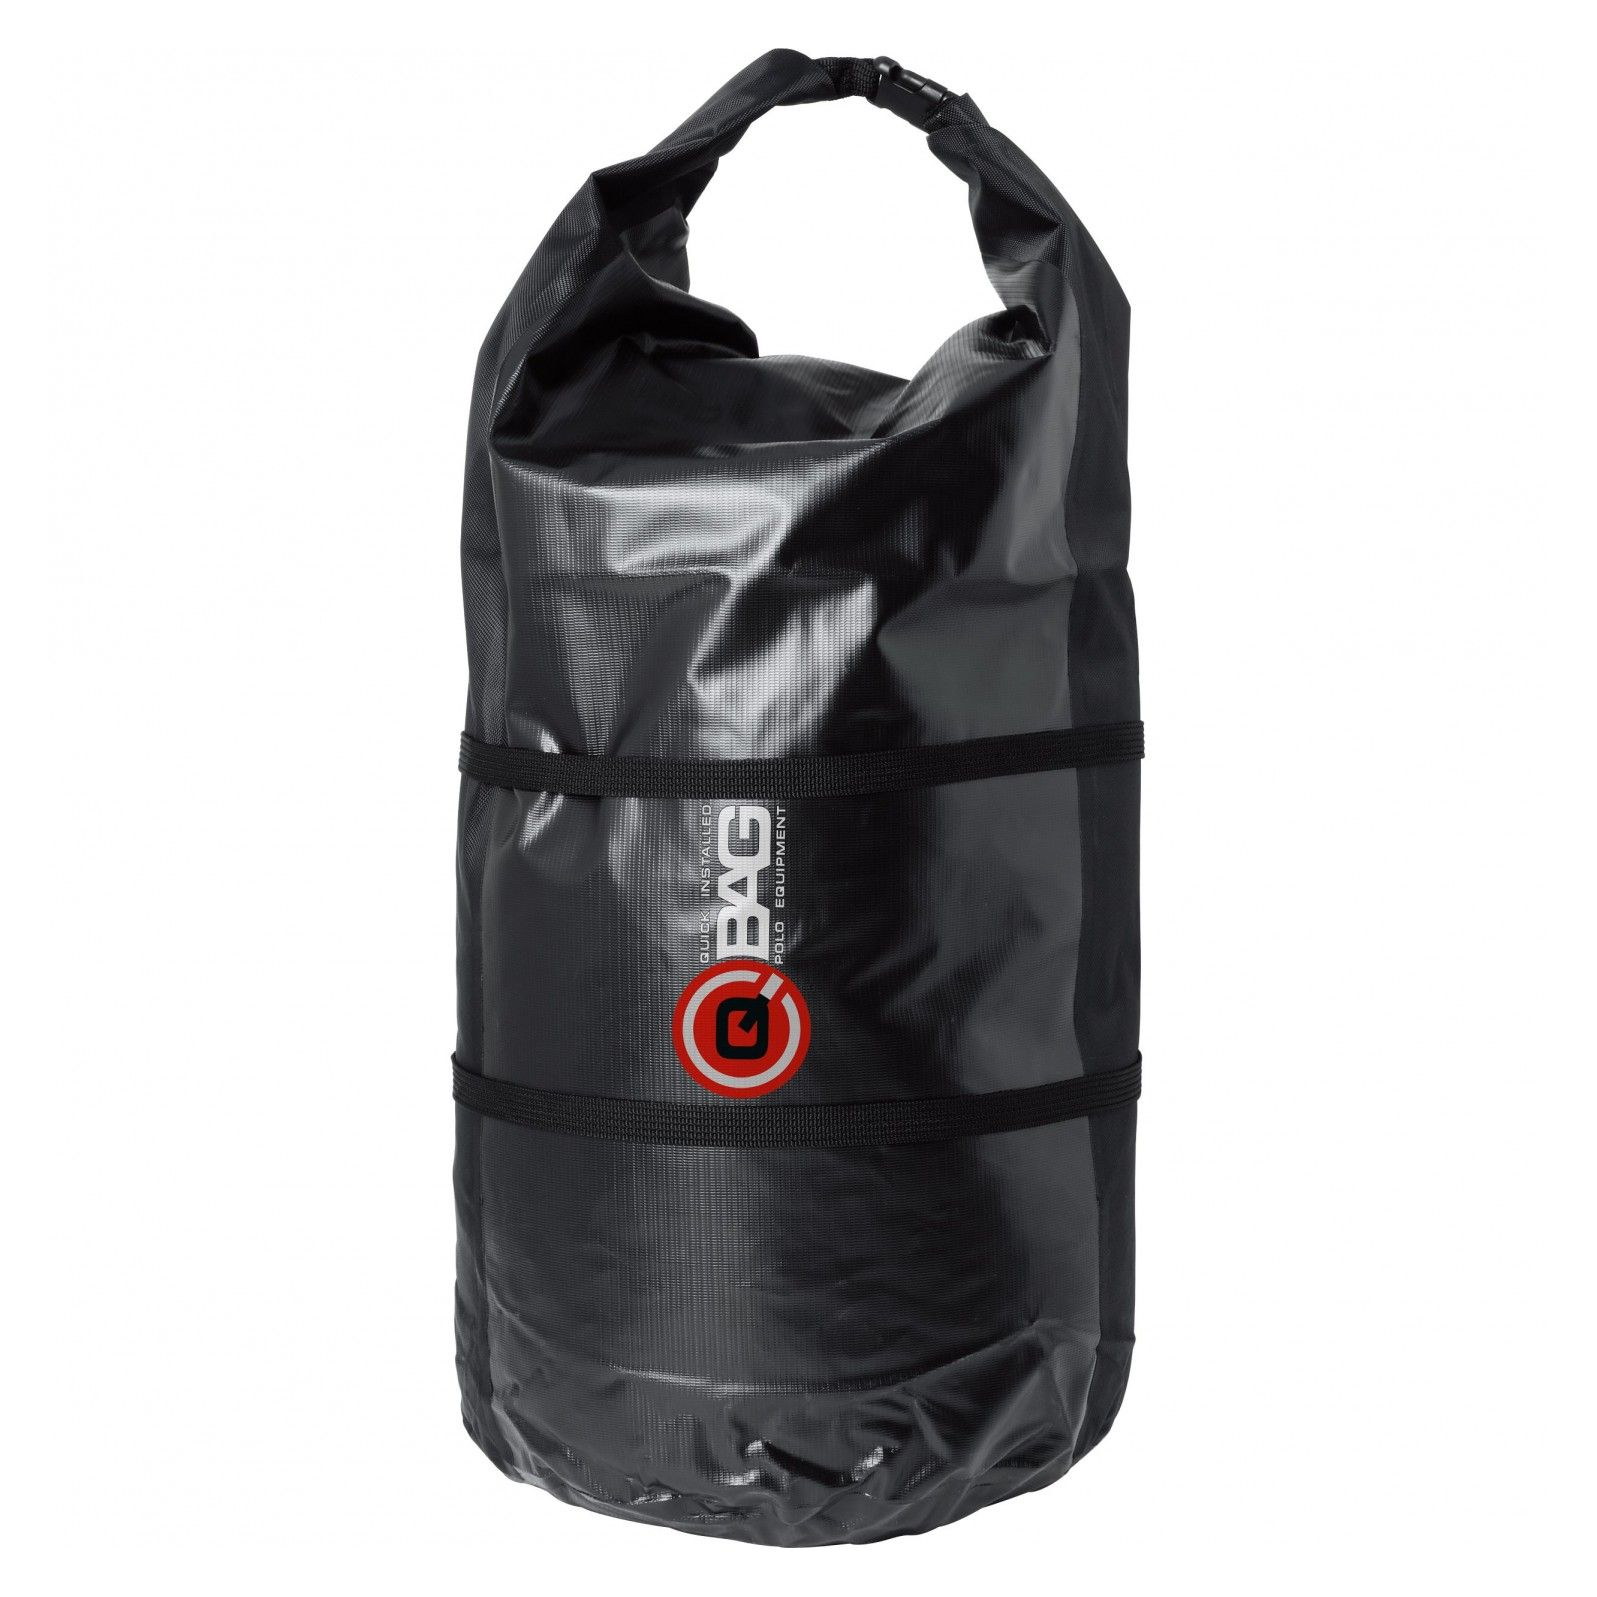 Sacoche de selle Q Bag Waterproof 01 65 litres